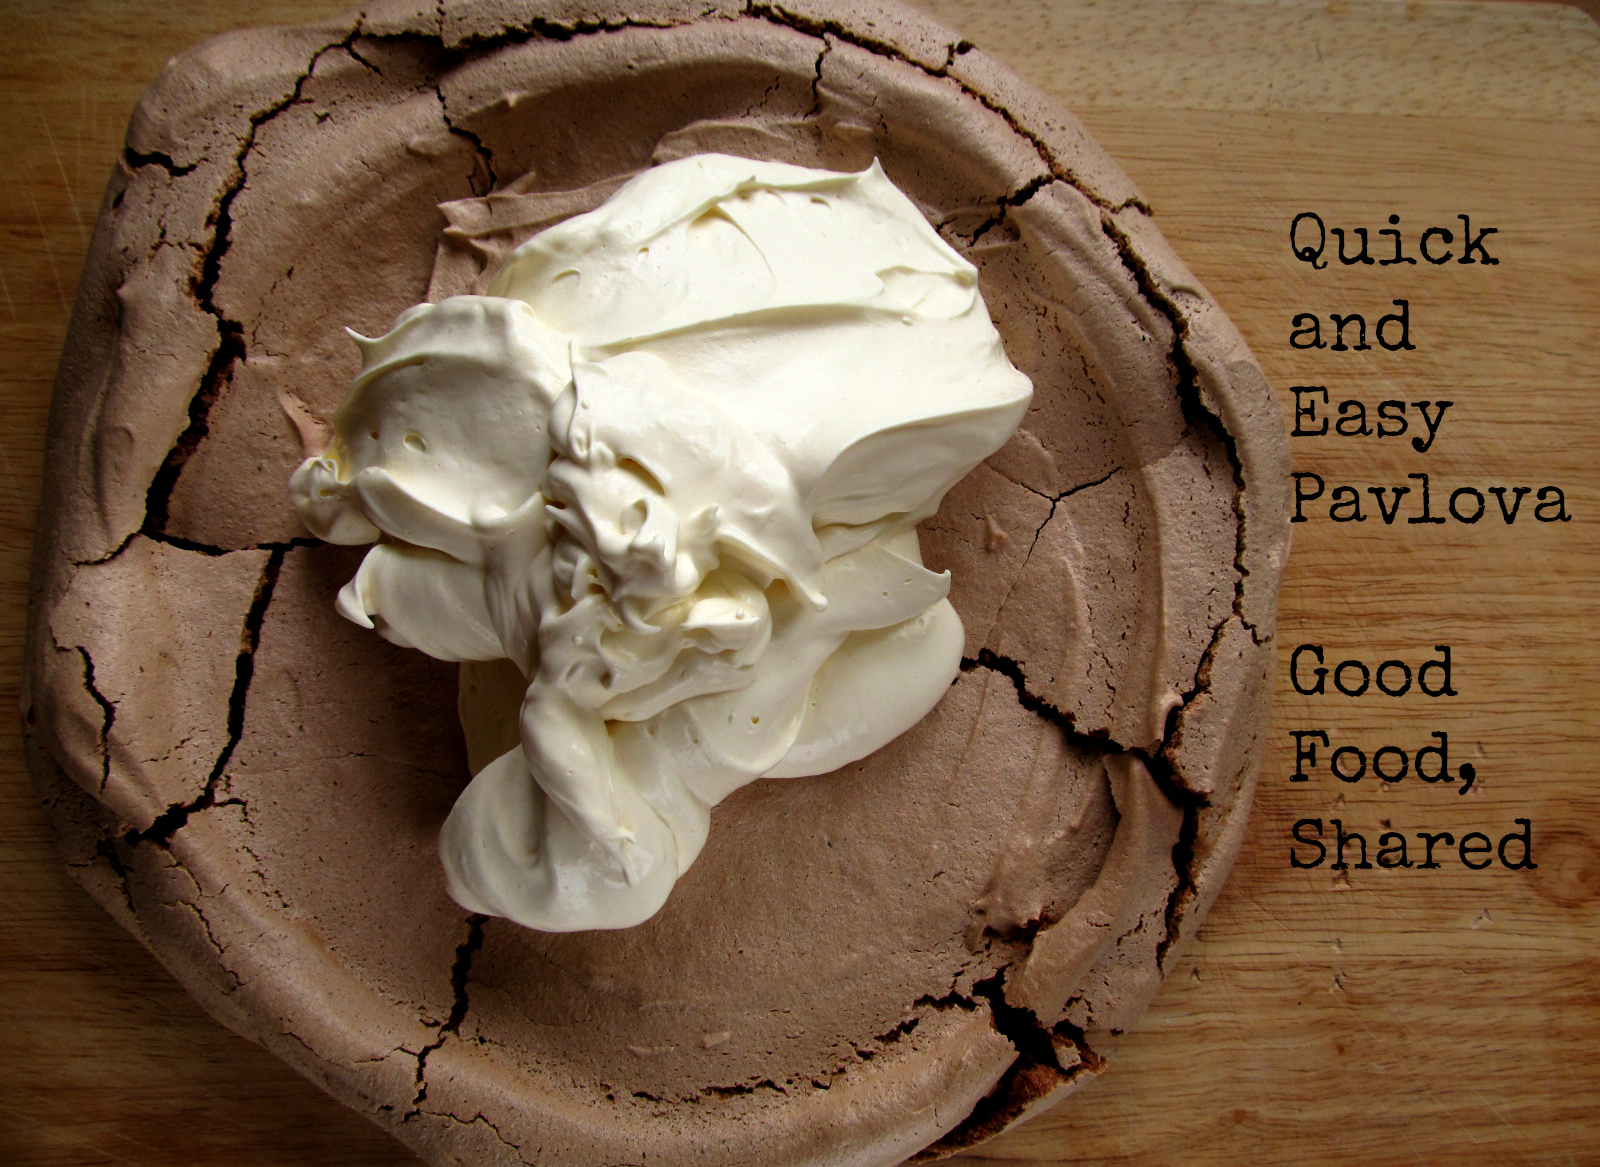 Good Food, Shared: Quick and Easy Pavlova